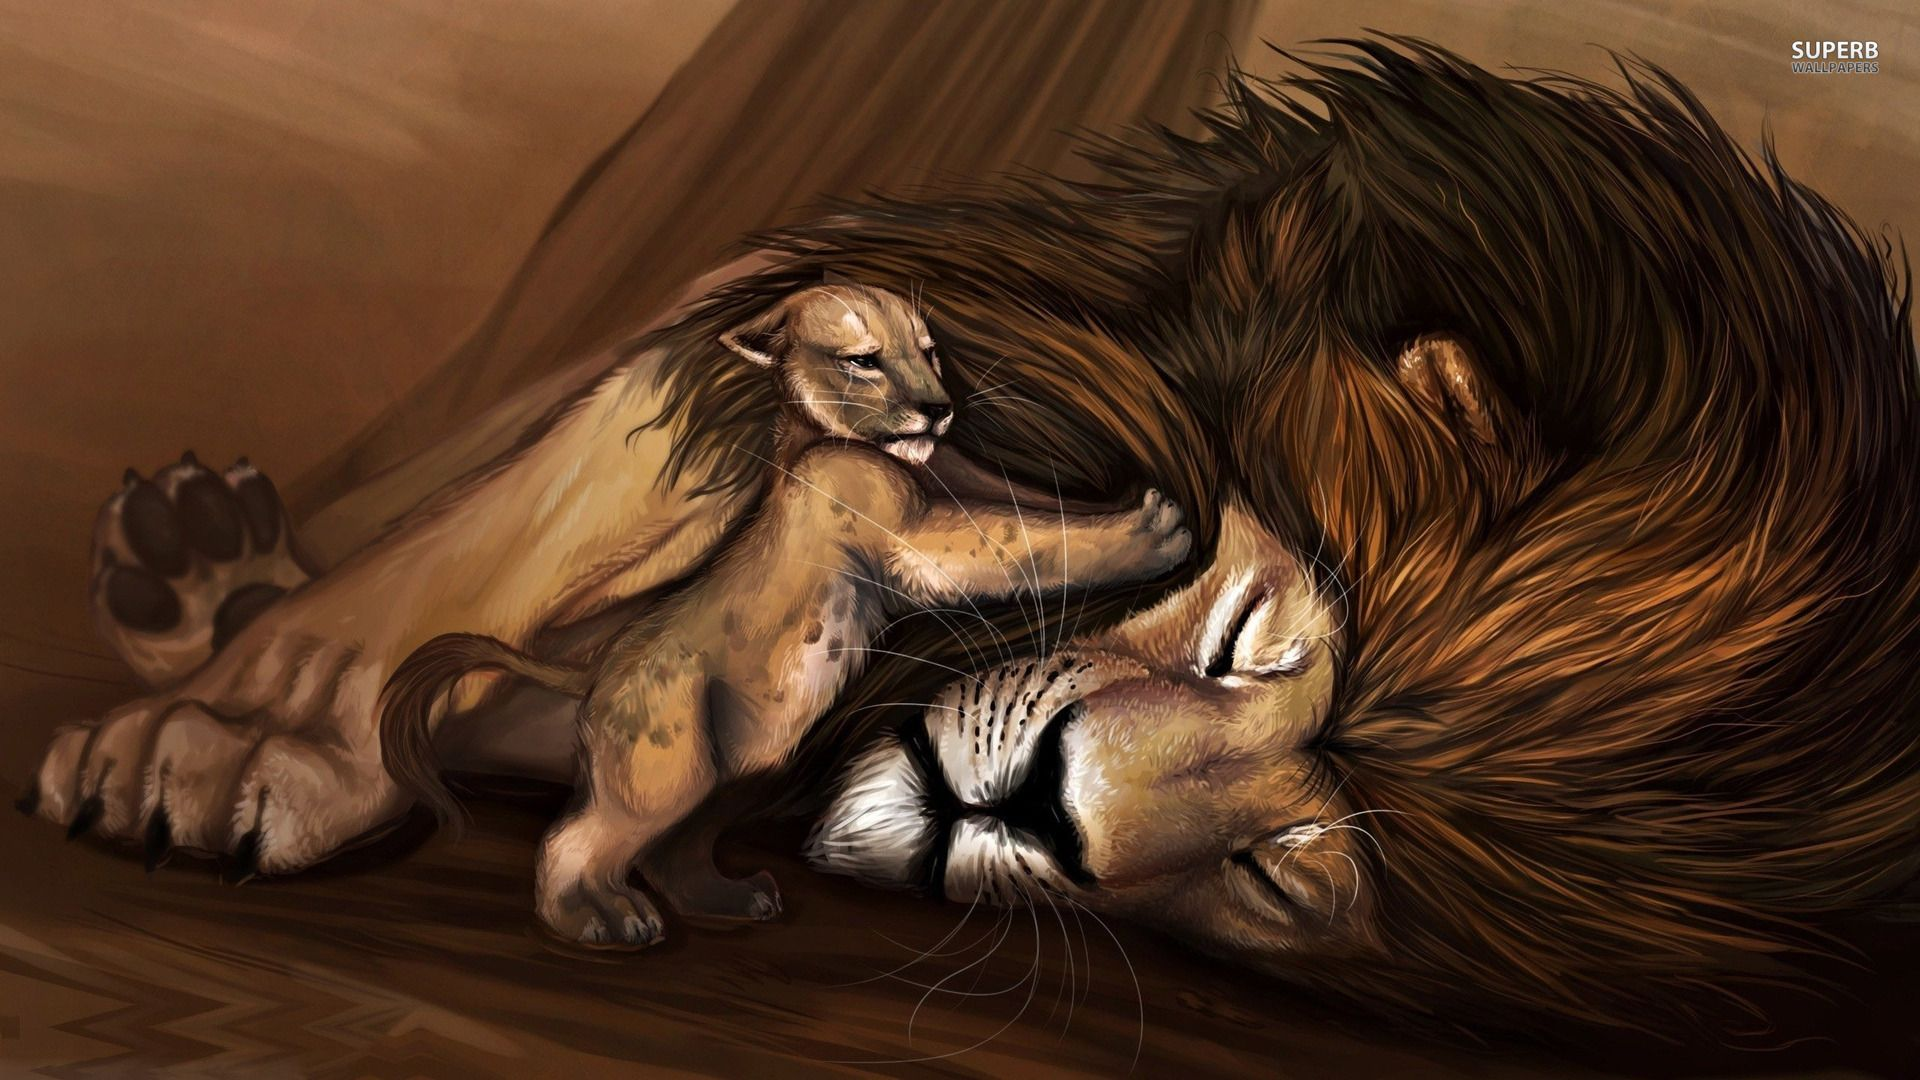 Real Life Painting Of Lion King Mufasa Death